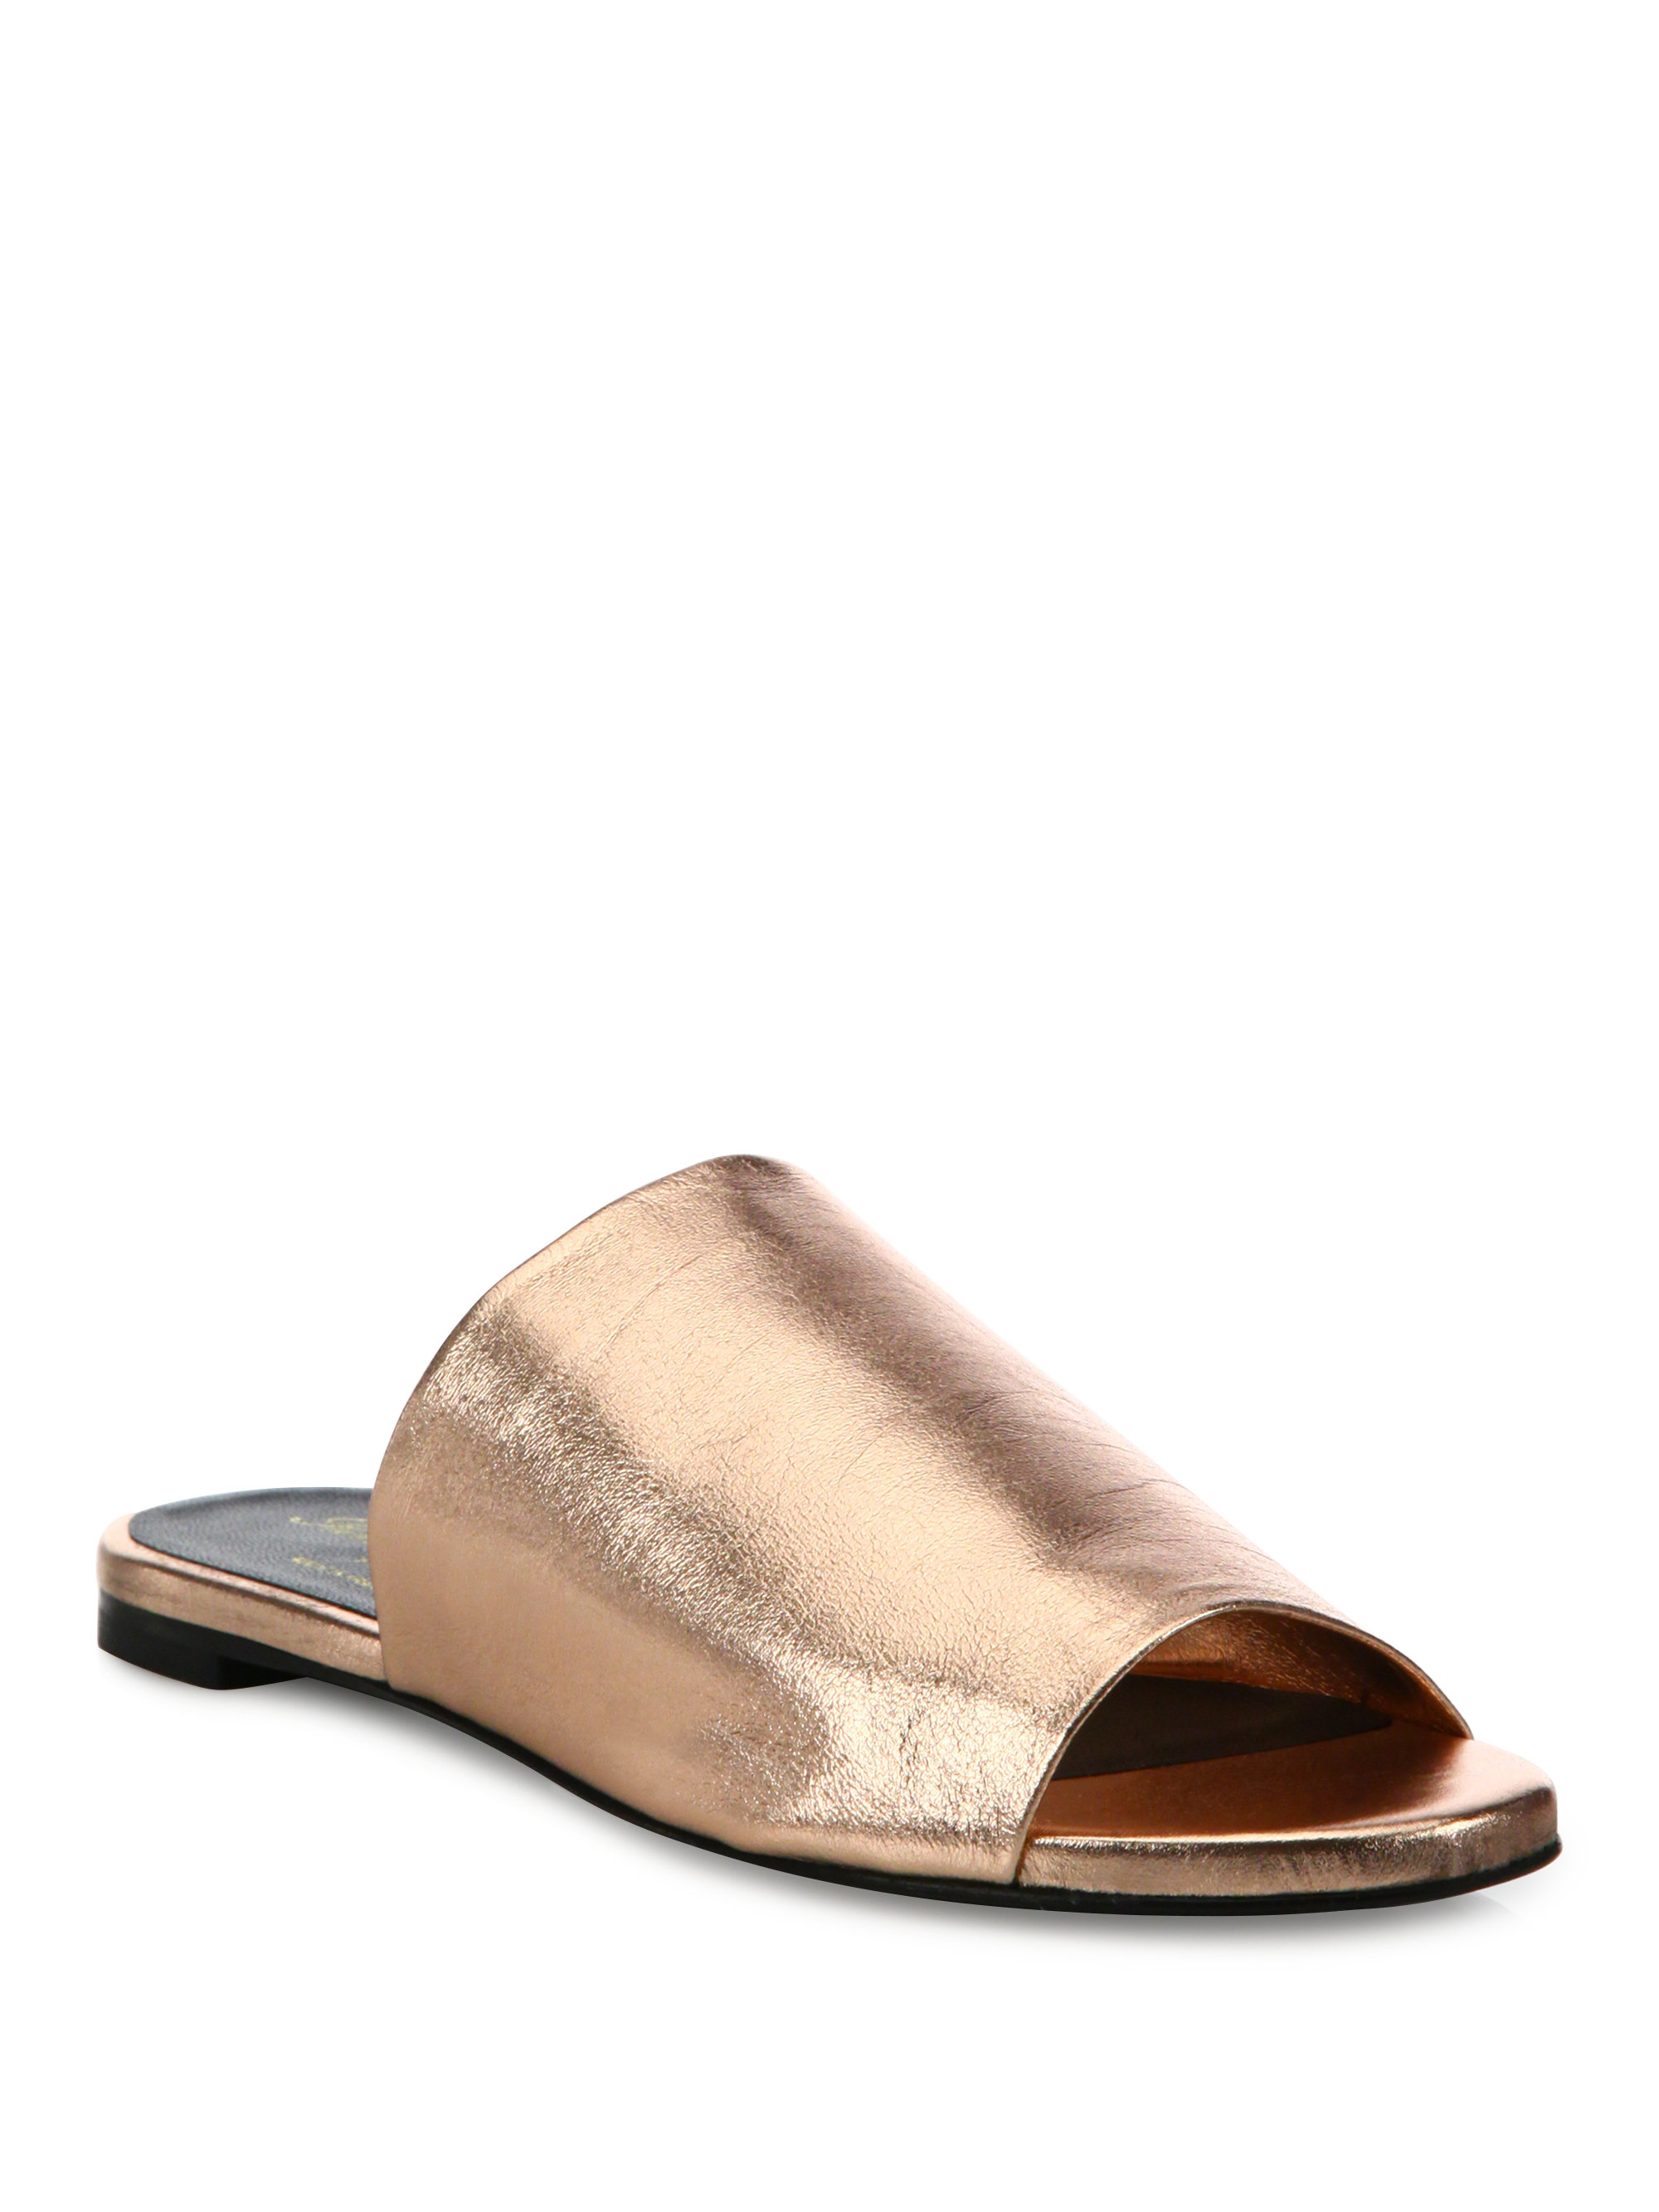 outlet 100% authentic clearance latest Robert Clergerie Metallic Slide Sandals clearance 100% authentic cheap huge surprise XRtBKskE